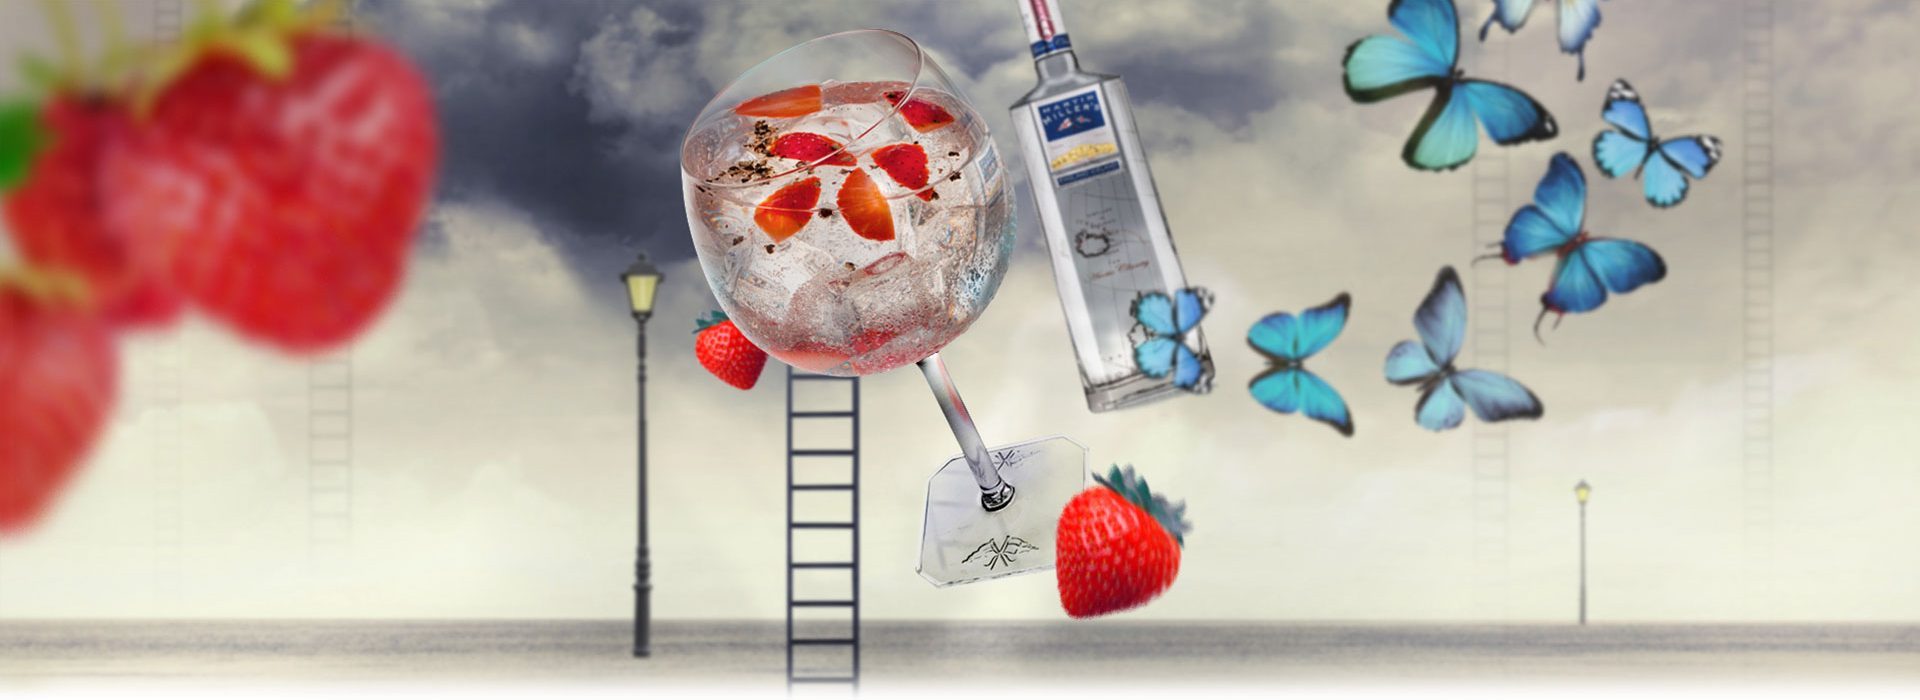 Gin & Tonic with Strawberry and Black Pepper